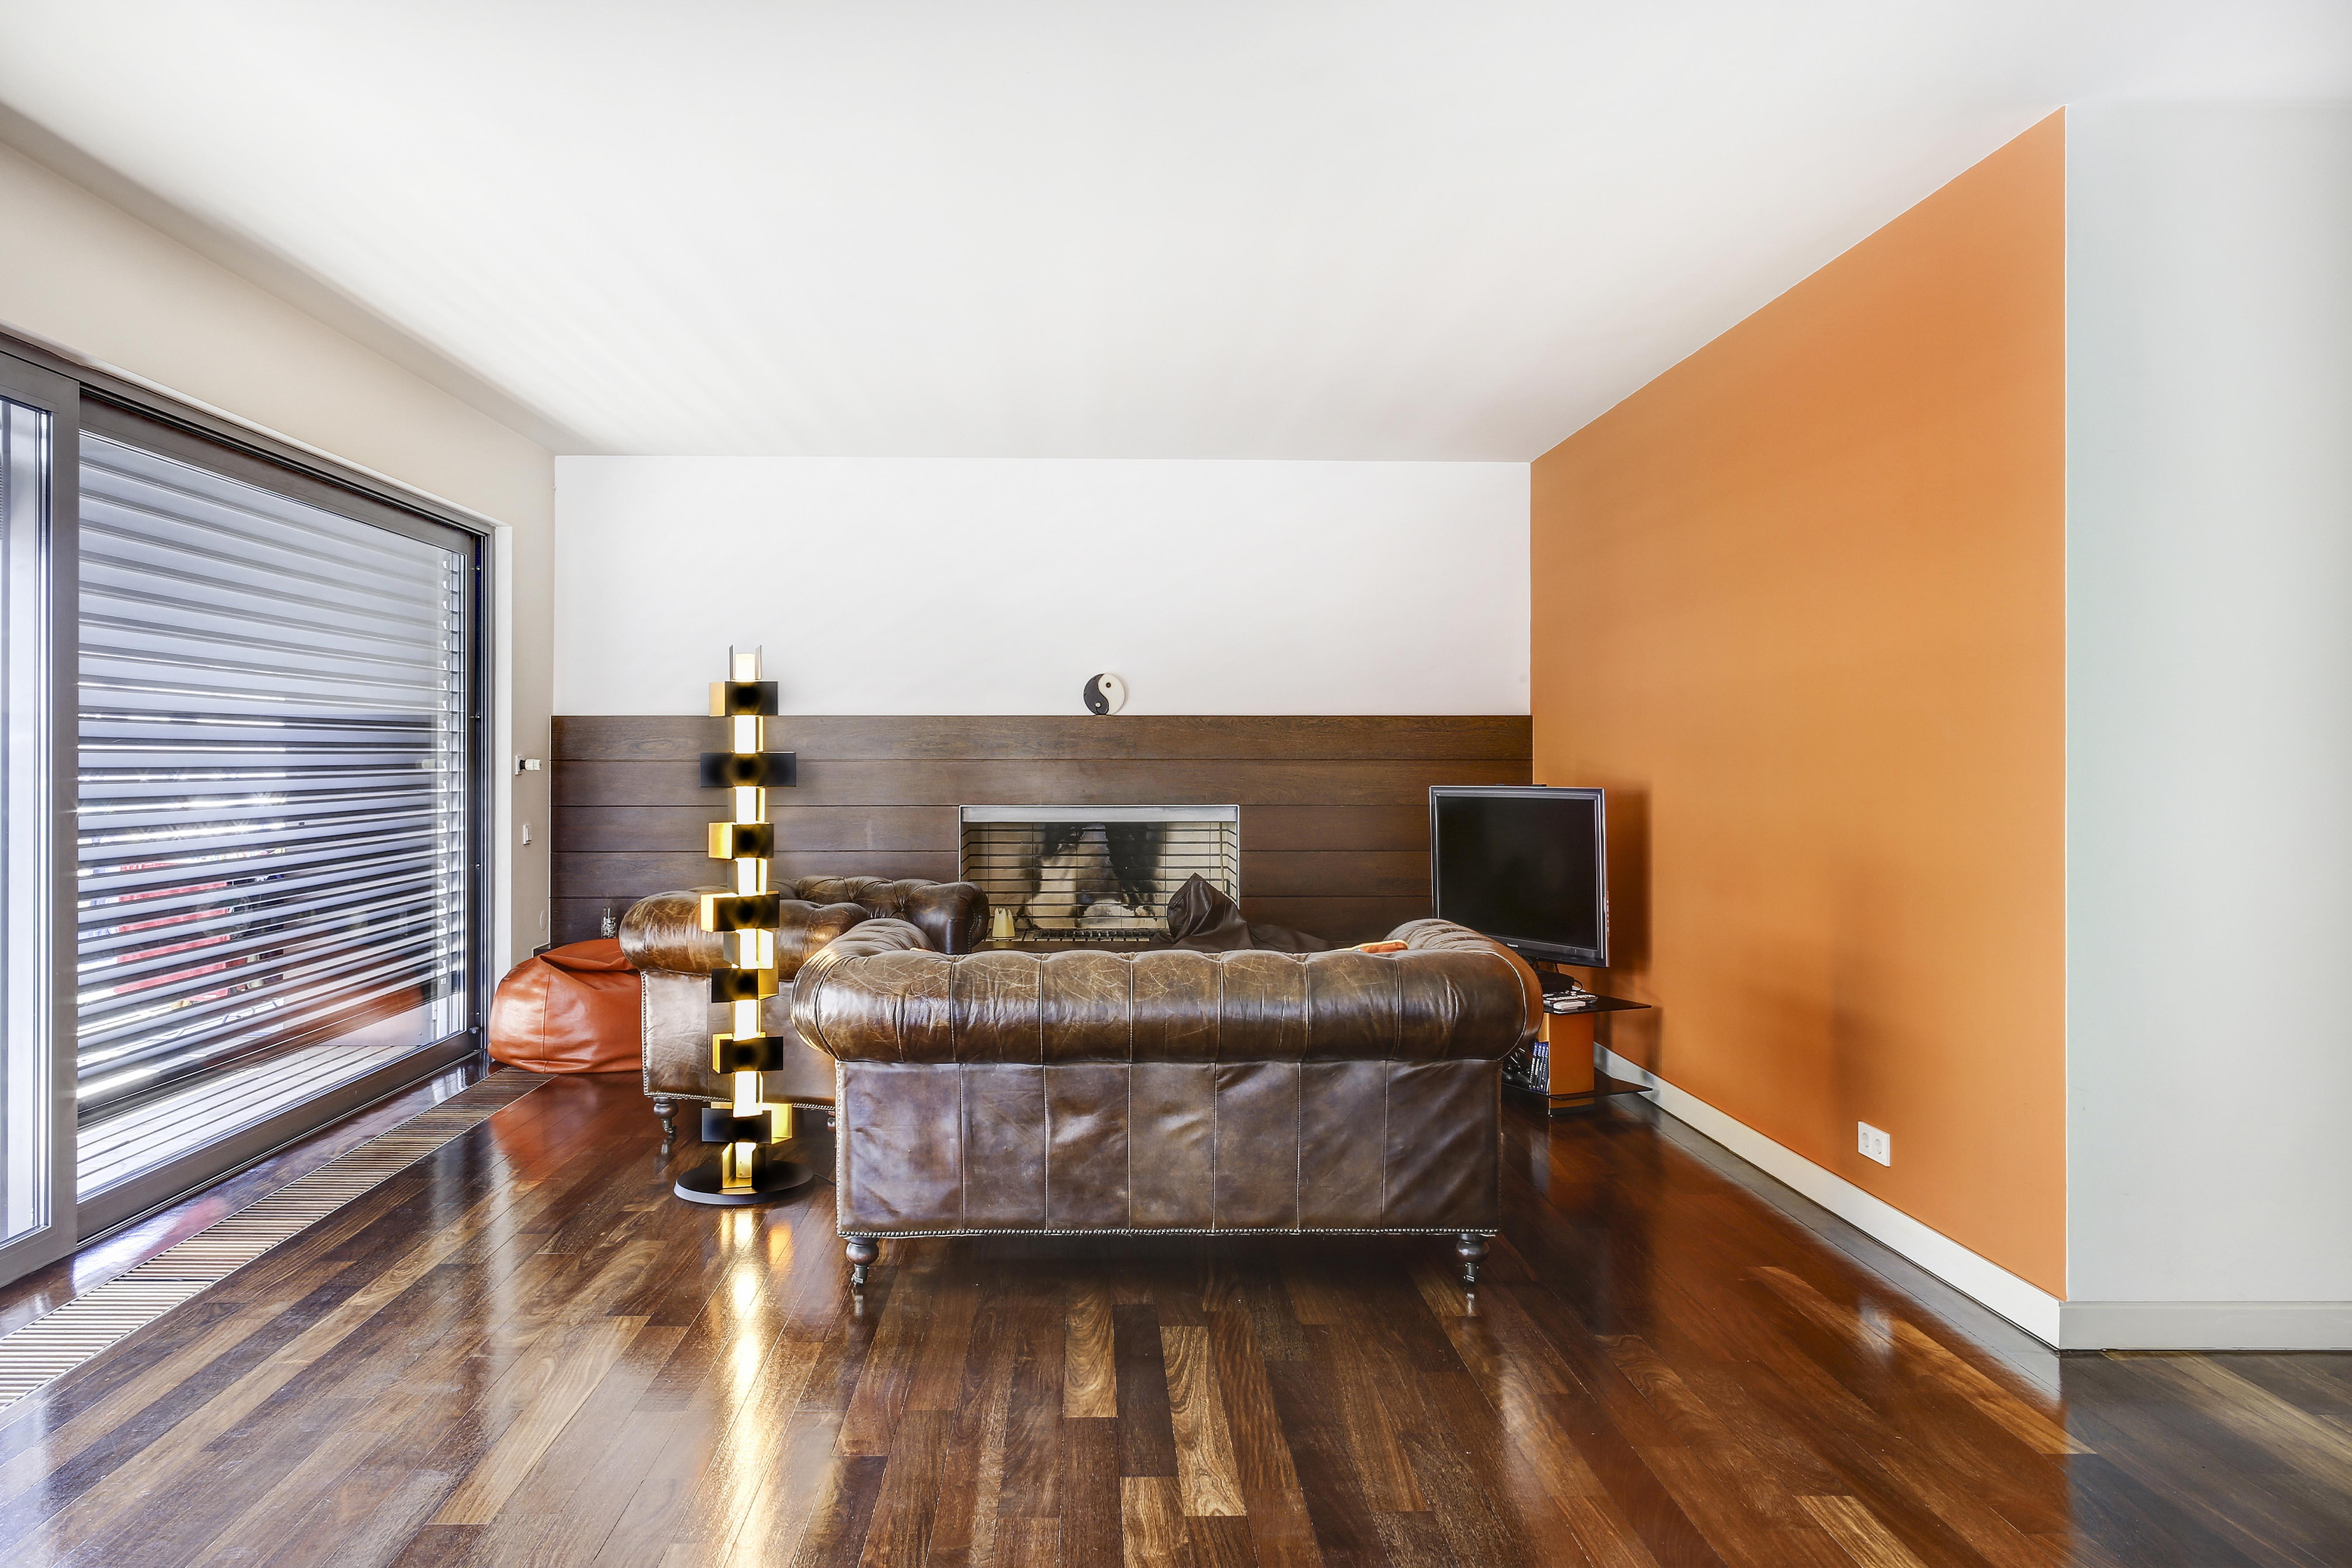 Apartment for Sale at Flat, 3 bedrooms, for Sale Cascais, Lisboa 2765-243 Portugal